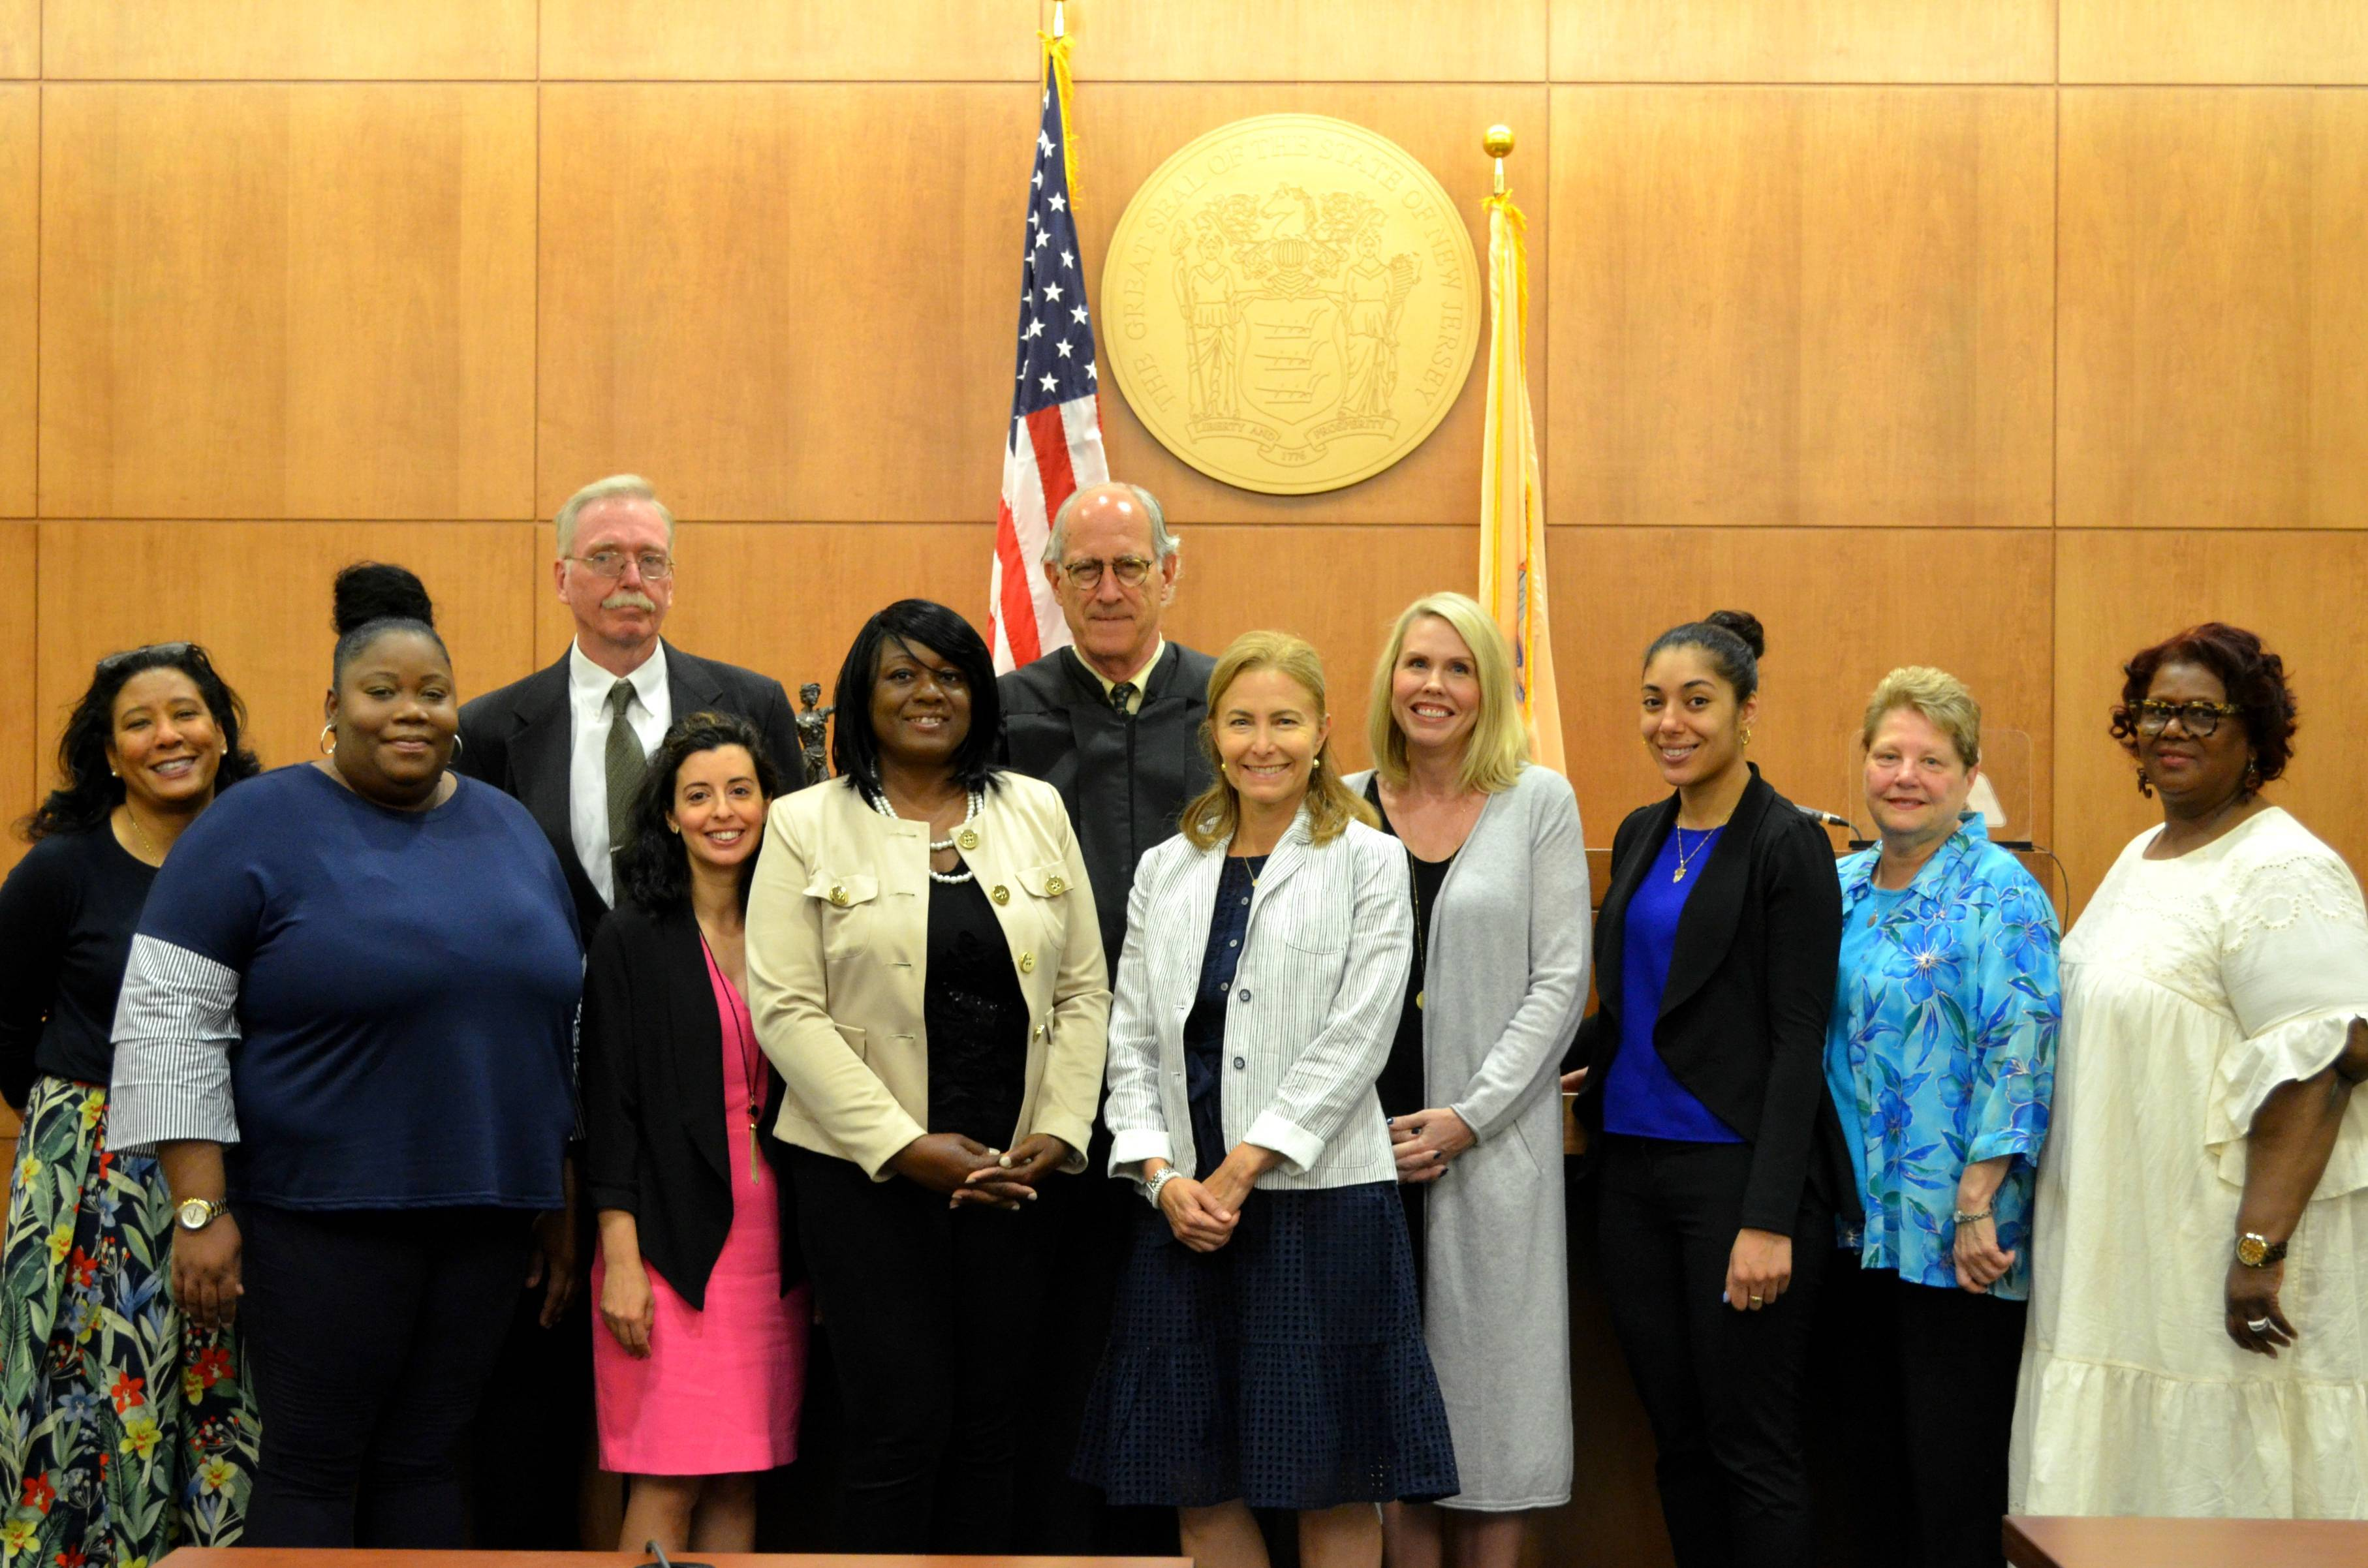 512f7f947d4585acd1bd_CASA_Swearing_In_Group_With_Judge.JPG